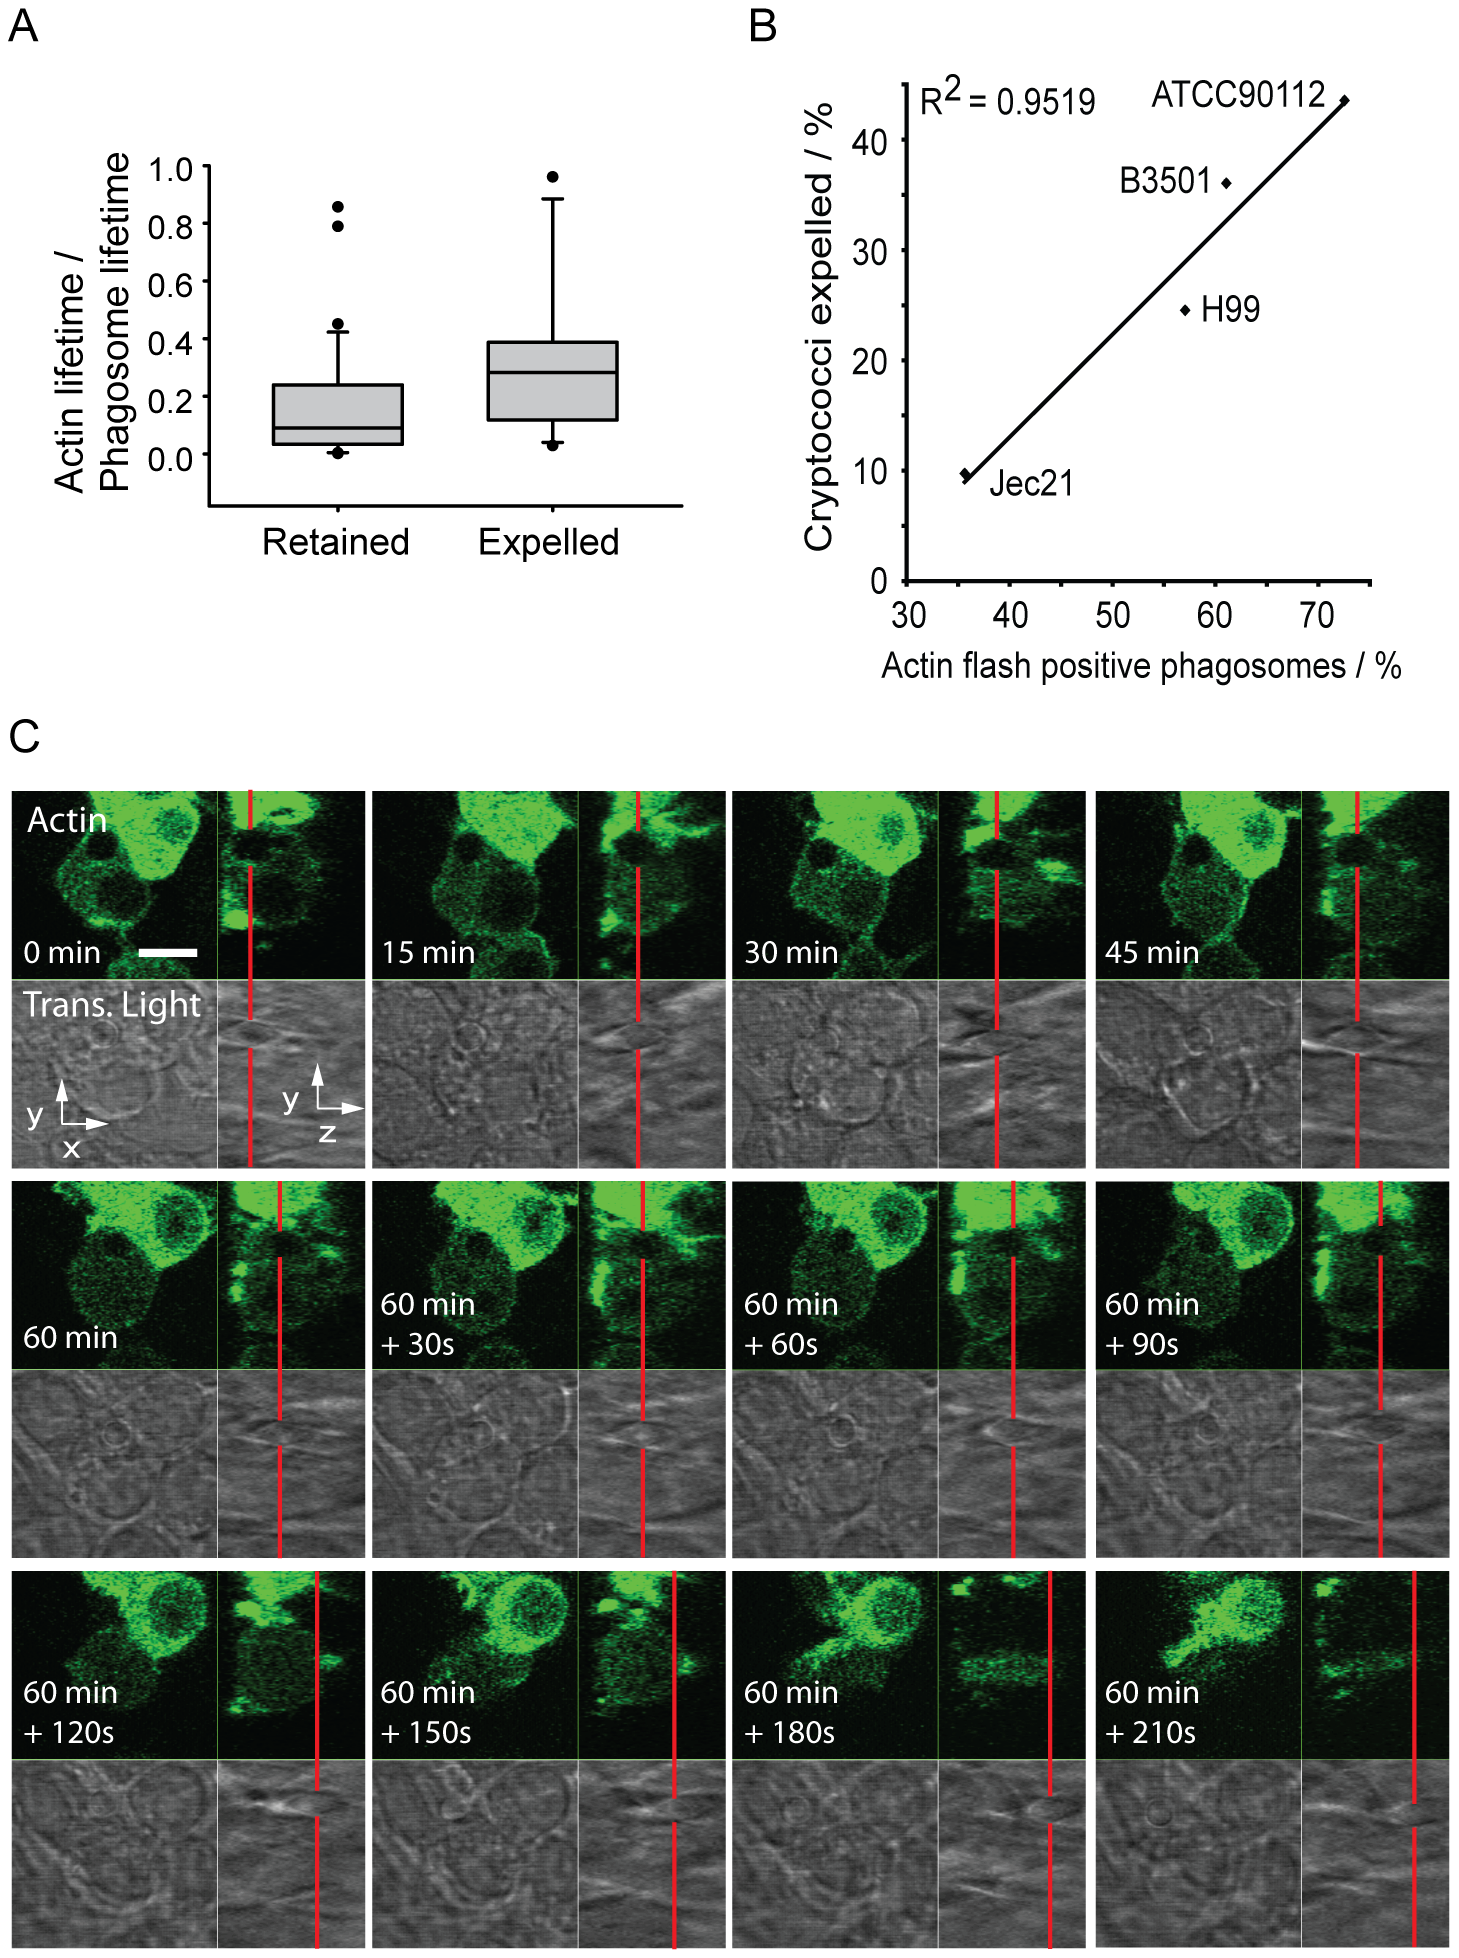 Actin flashes are positively correlated with cryptococcal expulsion but do not contribute to force generation.